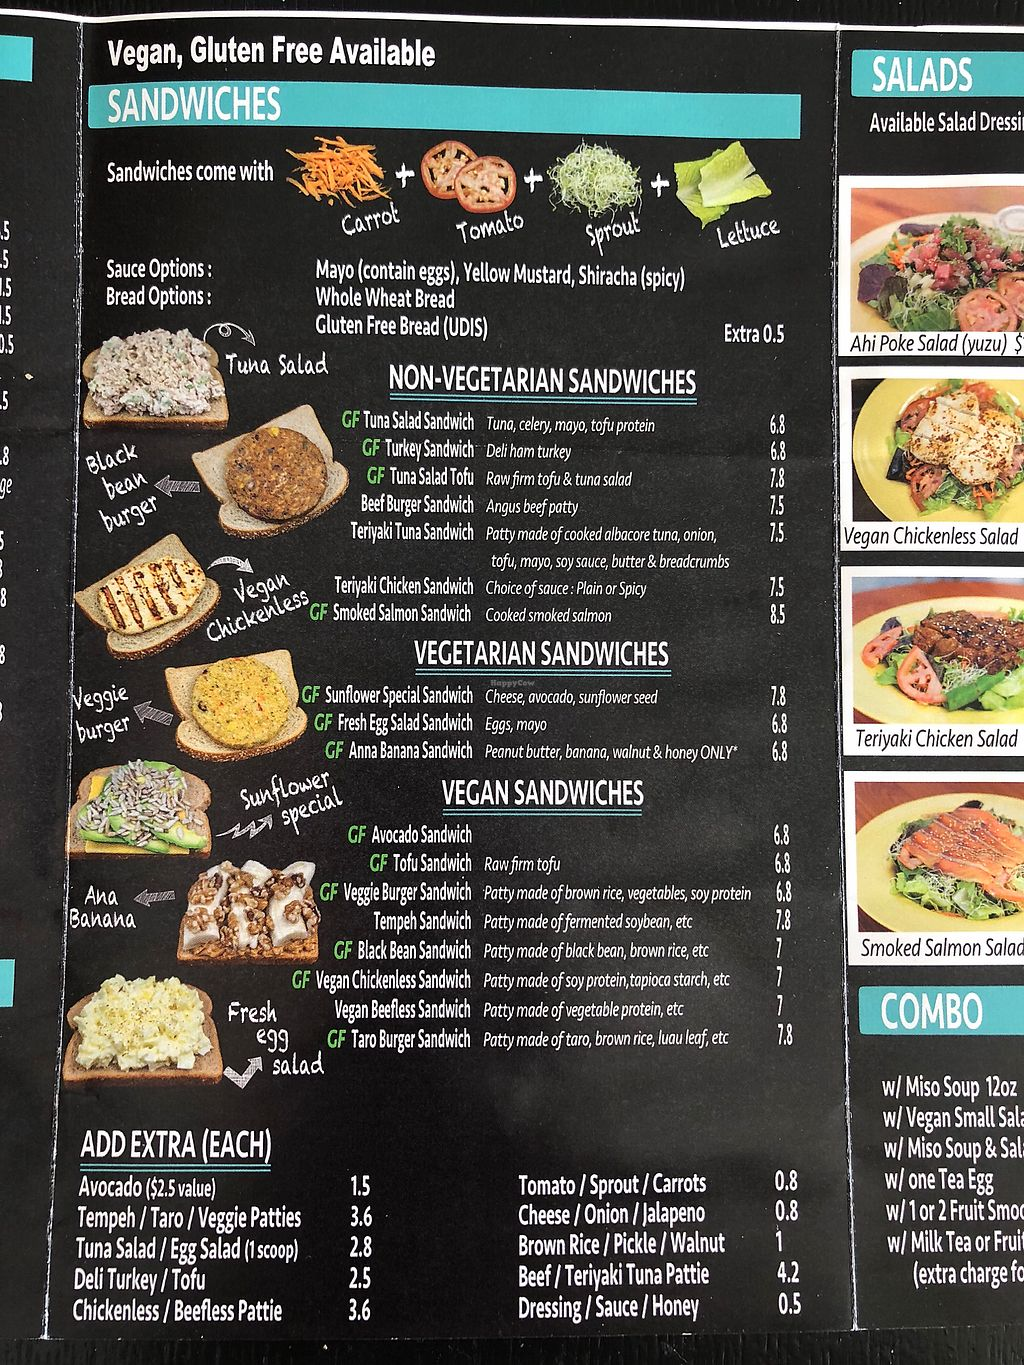 "Photo of Ruffage Natural Foods  by <a href=""/members/profile/veronikastealz"">veronikastealz</a> <br/>Updated menu (Feb 2018) Vegan Sandwiches <br/> February 8, 2018  - <a href='/contact/abuse/image/7361/356477'>Report</a>"